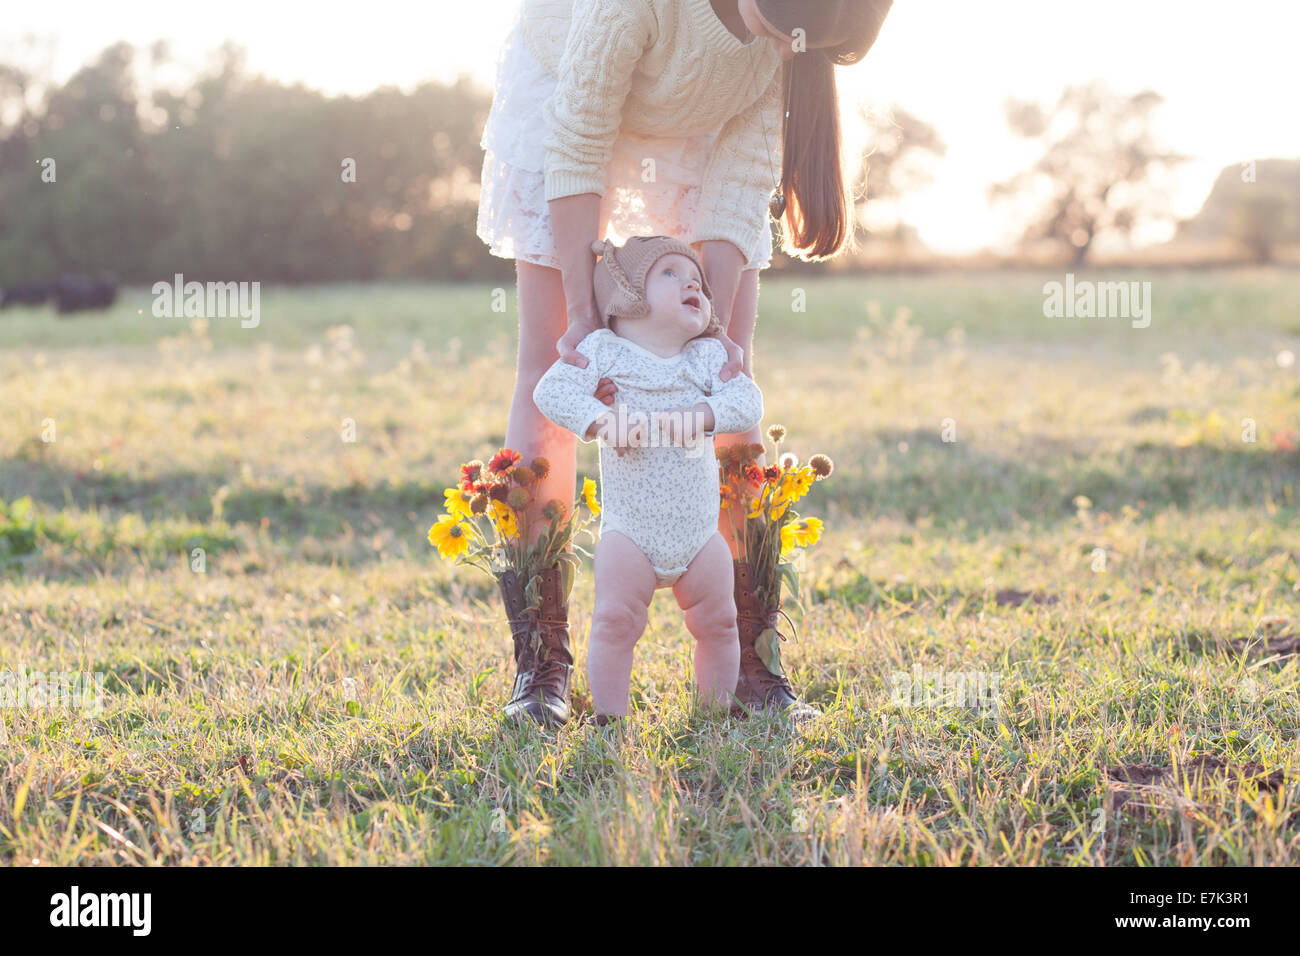 Creative portrait of mother and baby in the field - Stock Image